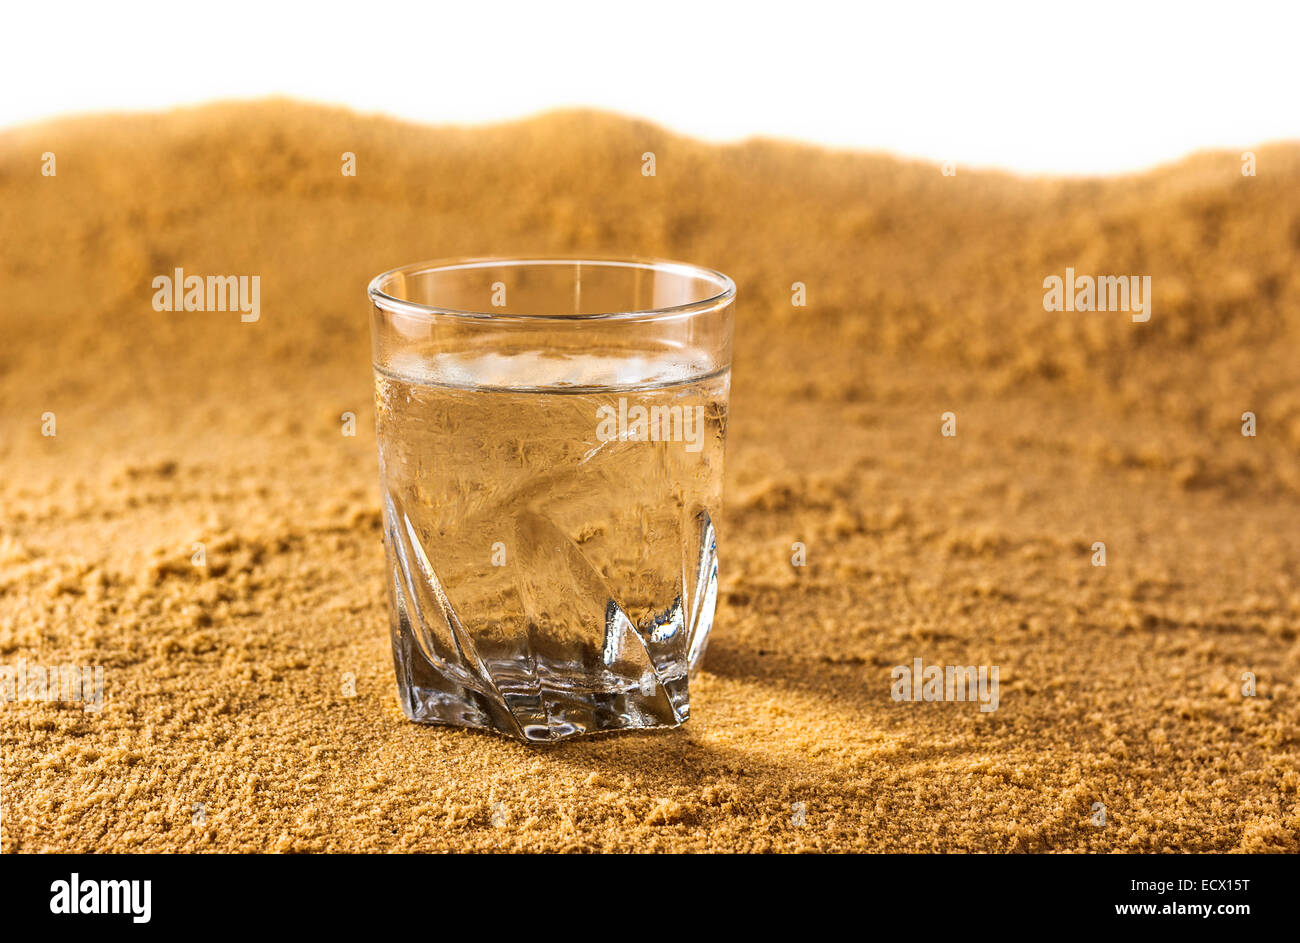 Glass of cold, clear water in a desert. - Stock Image